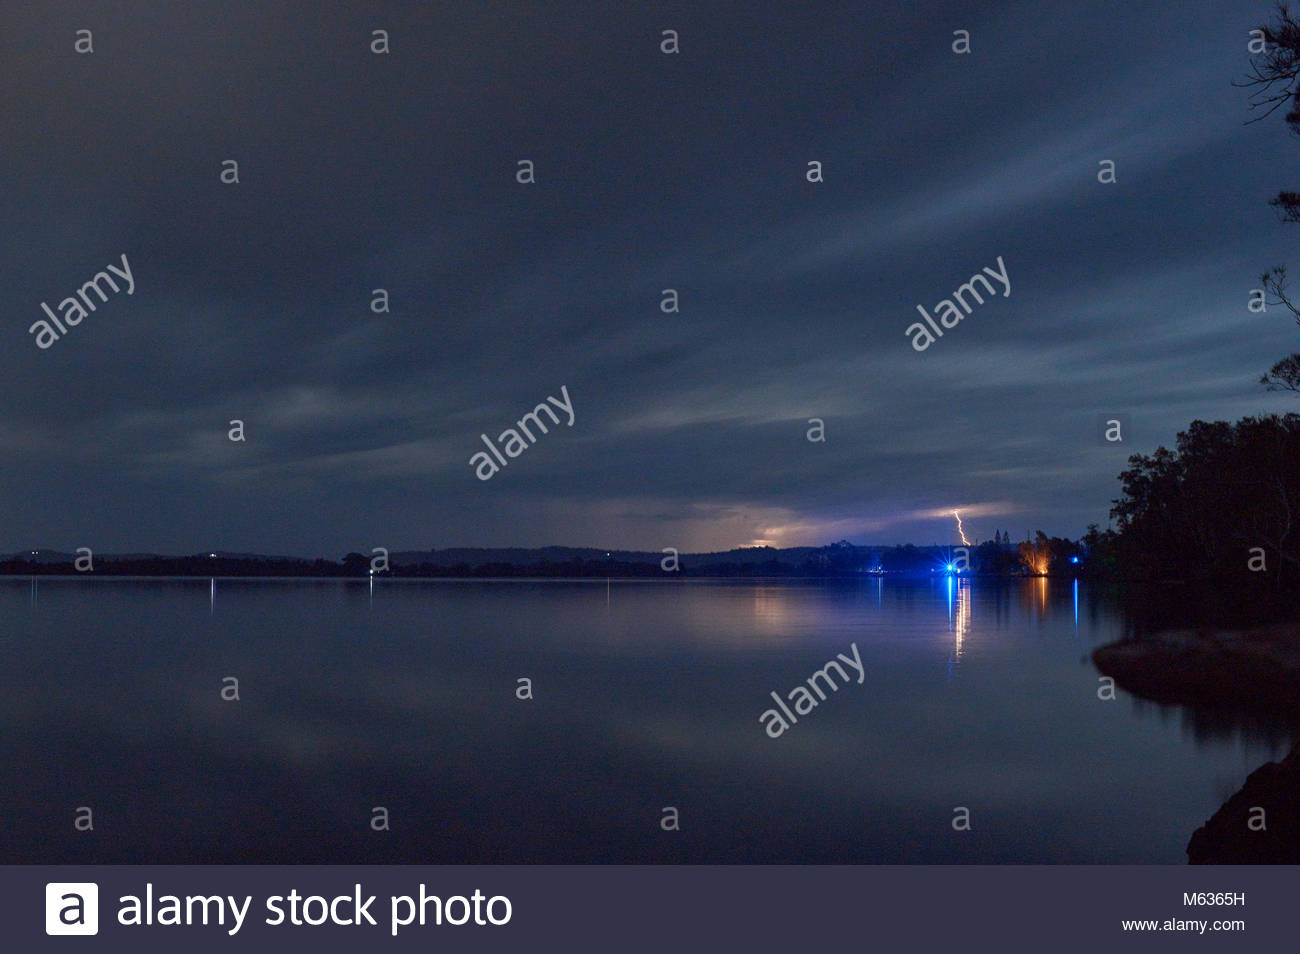 A long exposure image of dusk over the Clarence River, with a lightening storm in the distance; taken from Goodwood - Stock Image